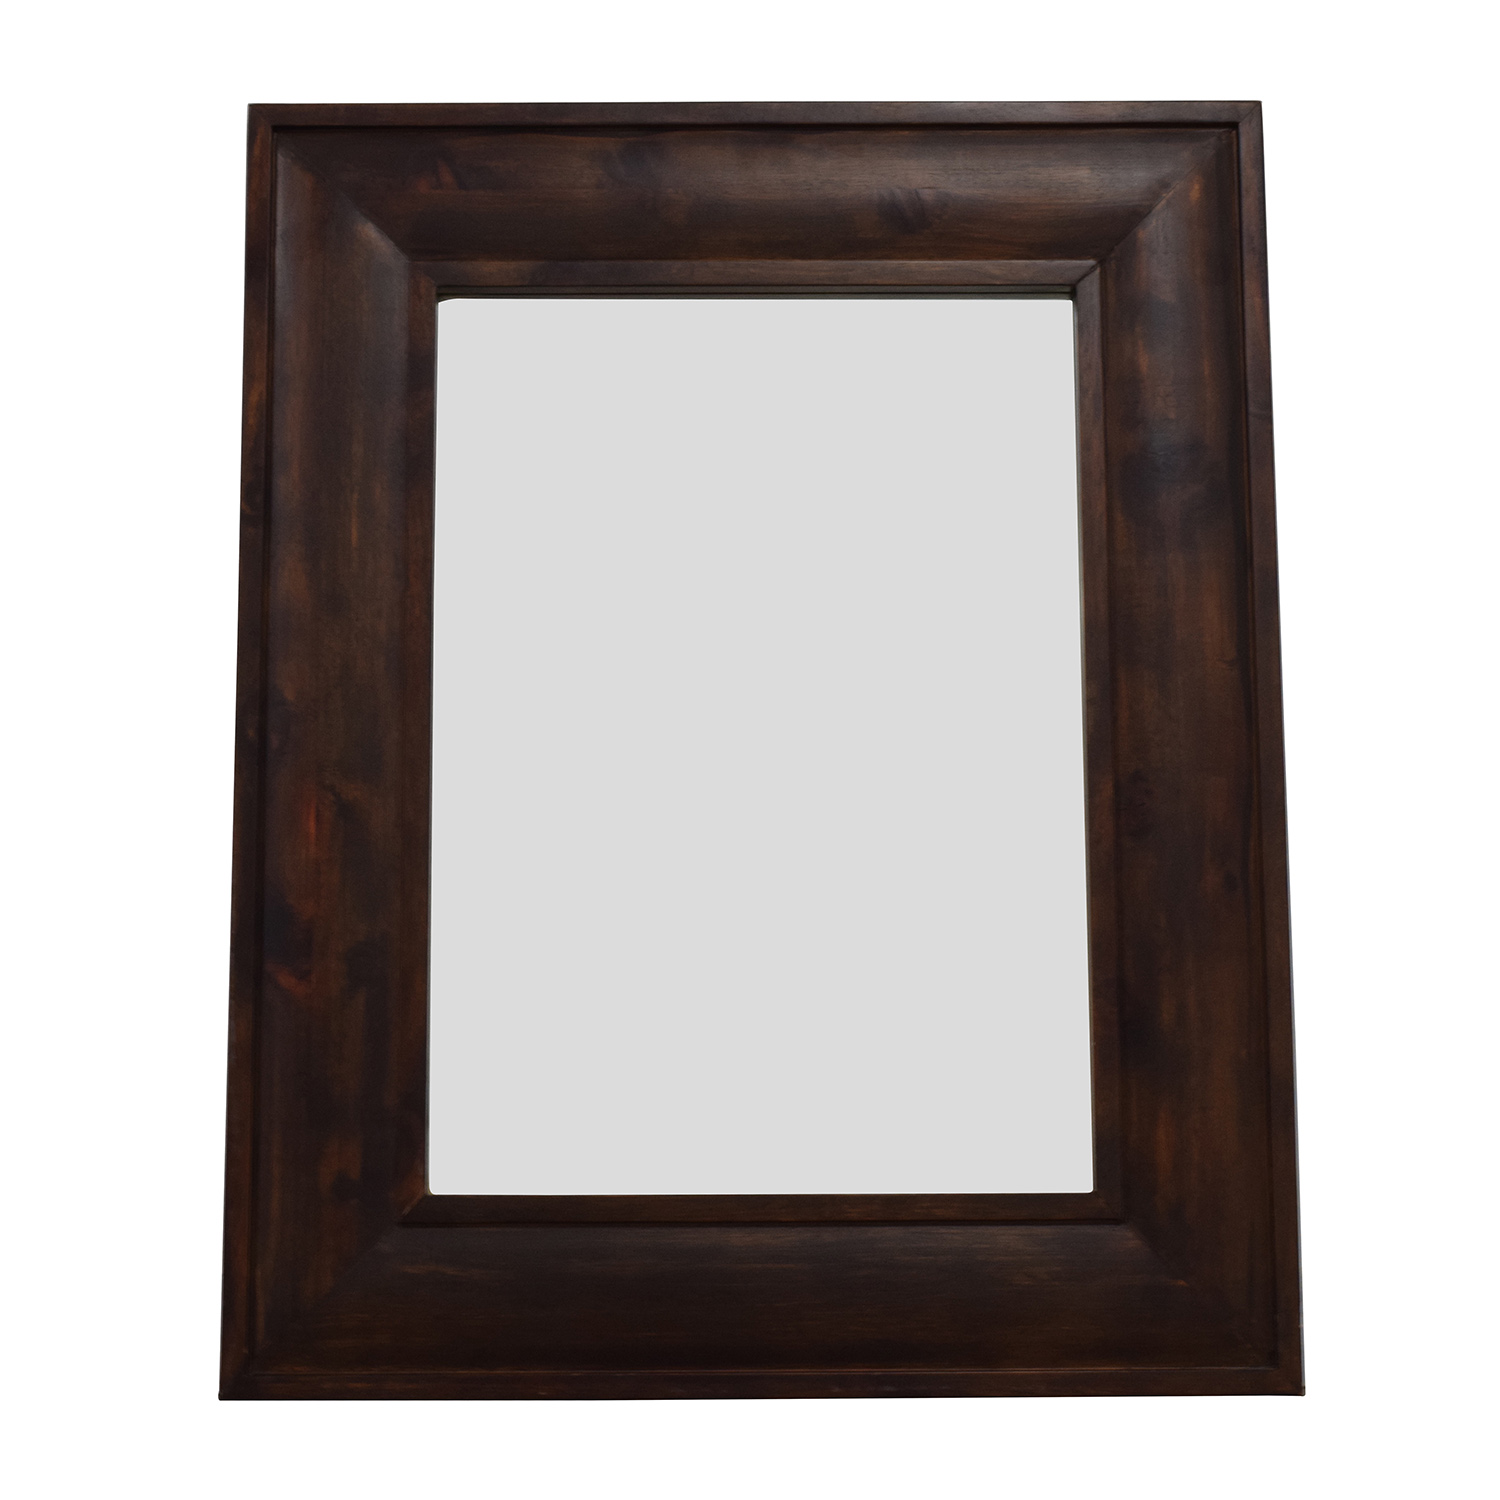 Room board mirror buy for Wood framed mirrors